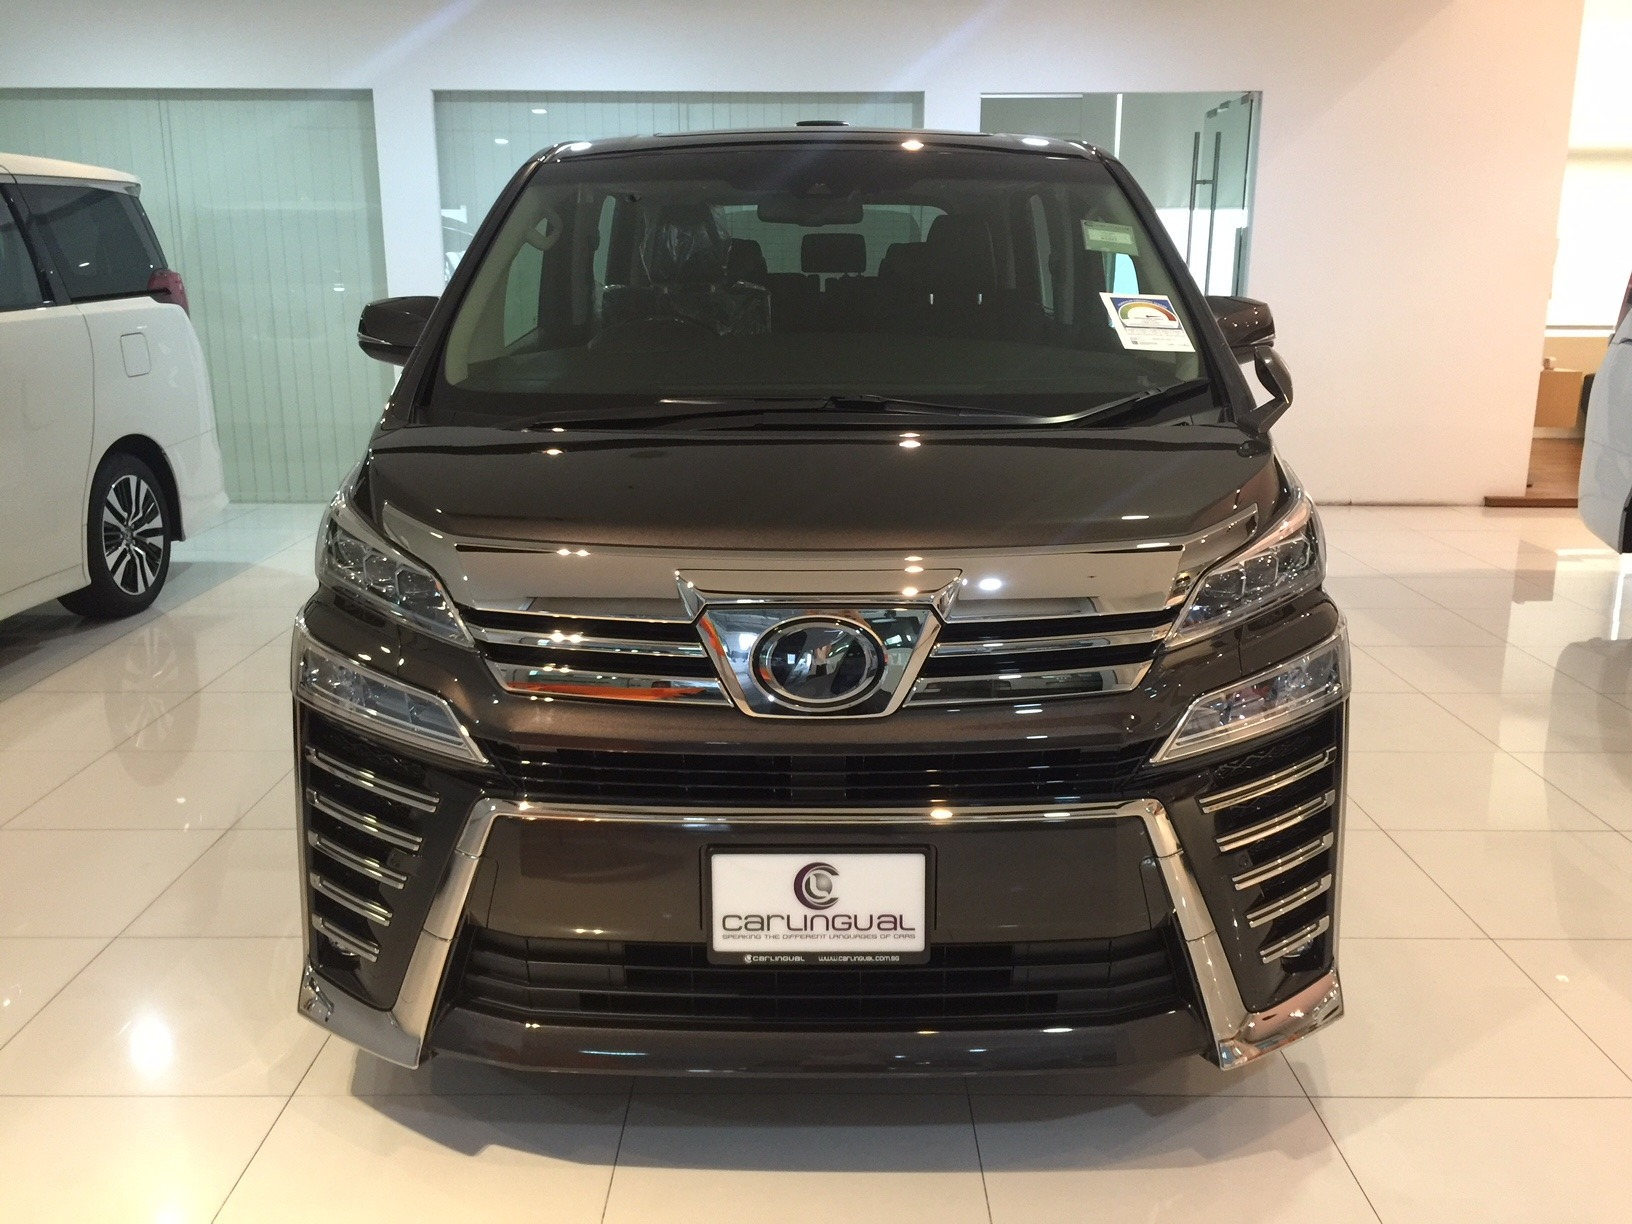 toyota all new vellfire 2.5 zg edition harga grand veloz 1.5 2017 2 5 7 seater a carlingual full